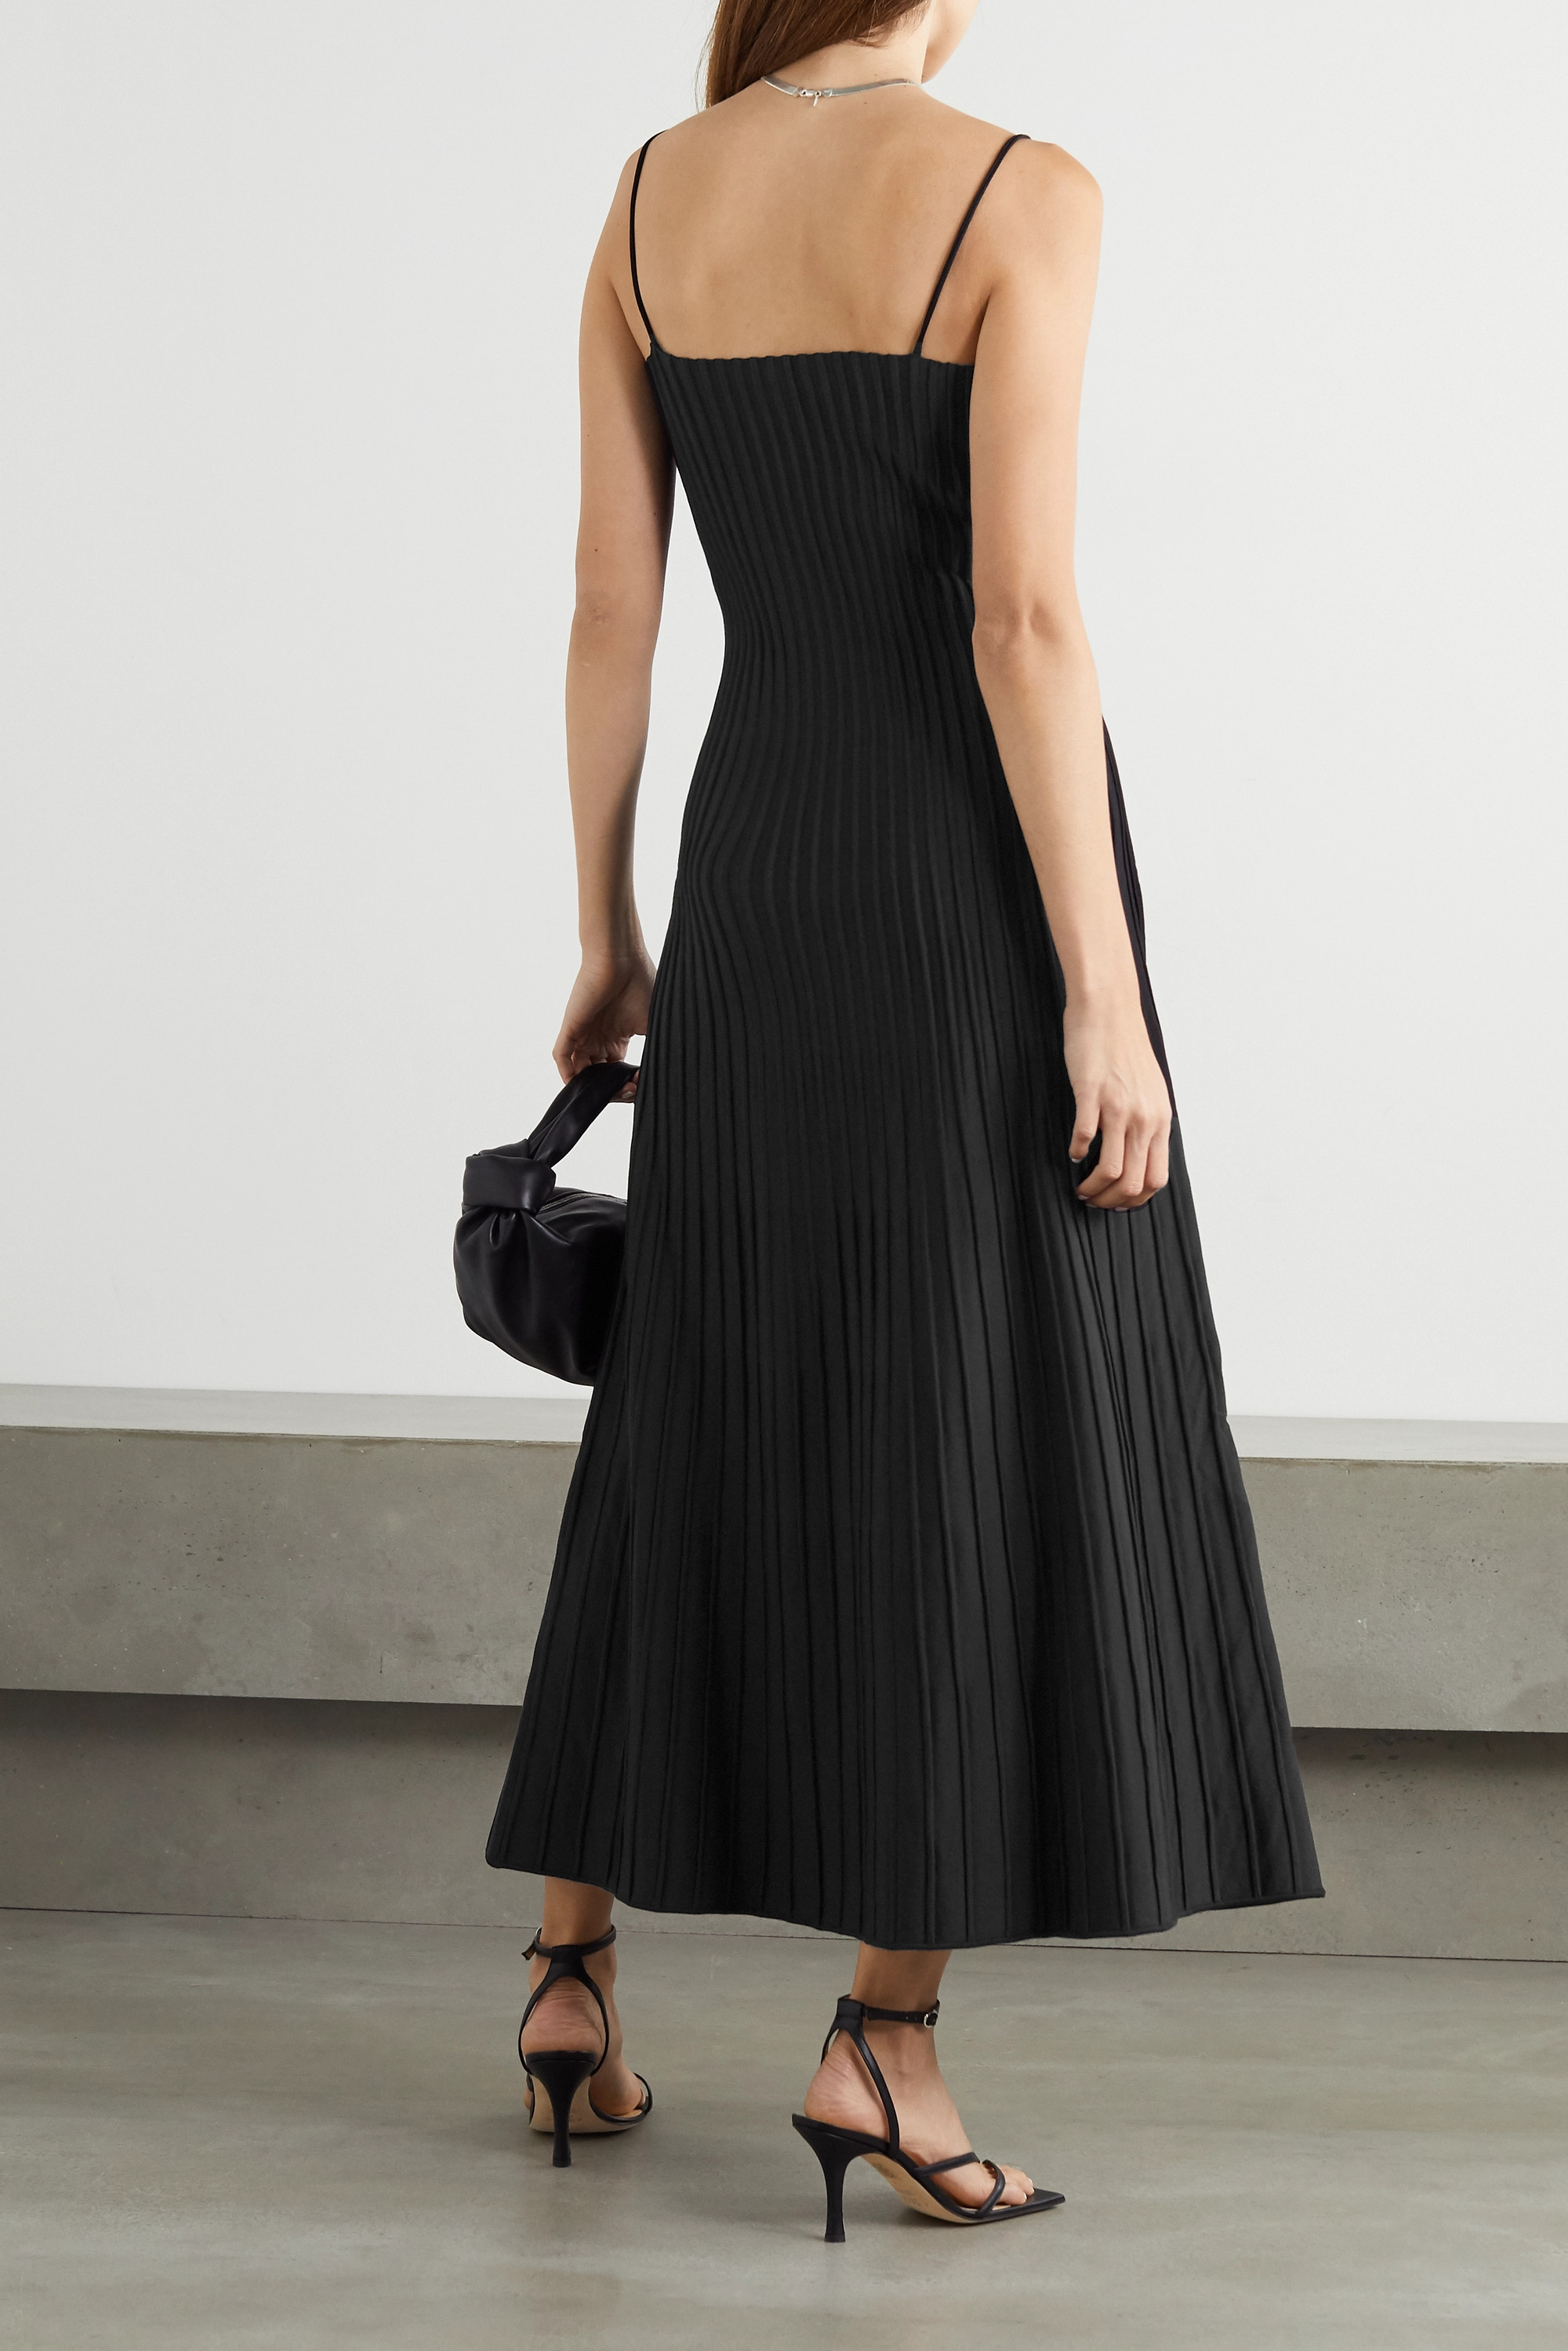 CASASOLA + NET SUSTAIN Carlotta ribbed stretch-knit midi dress